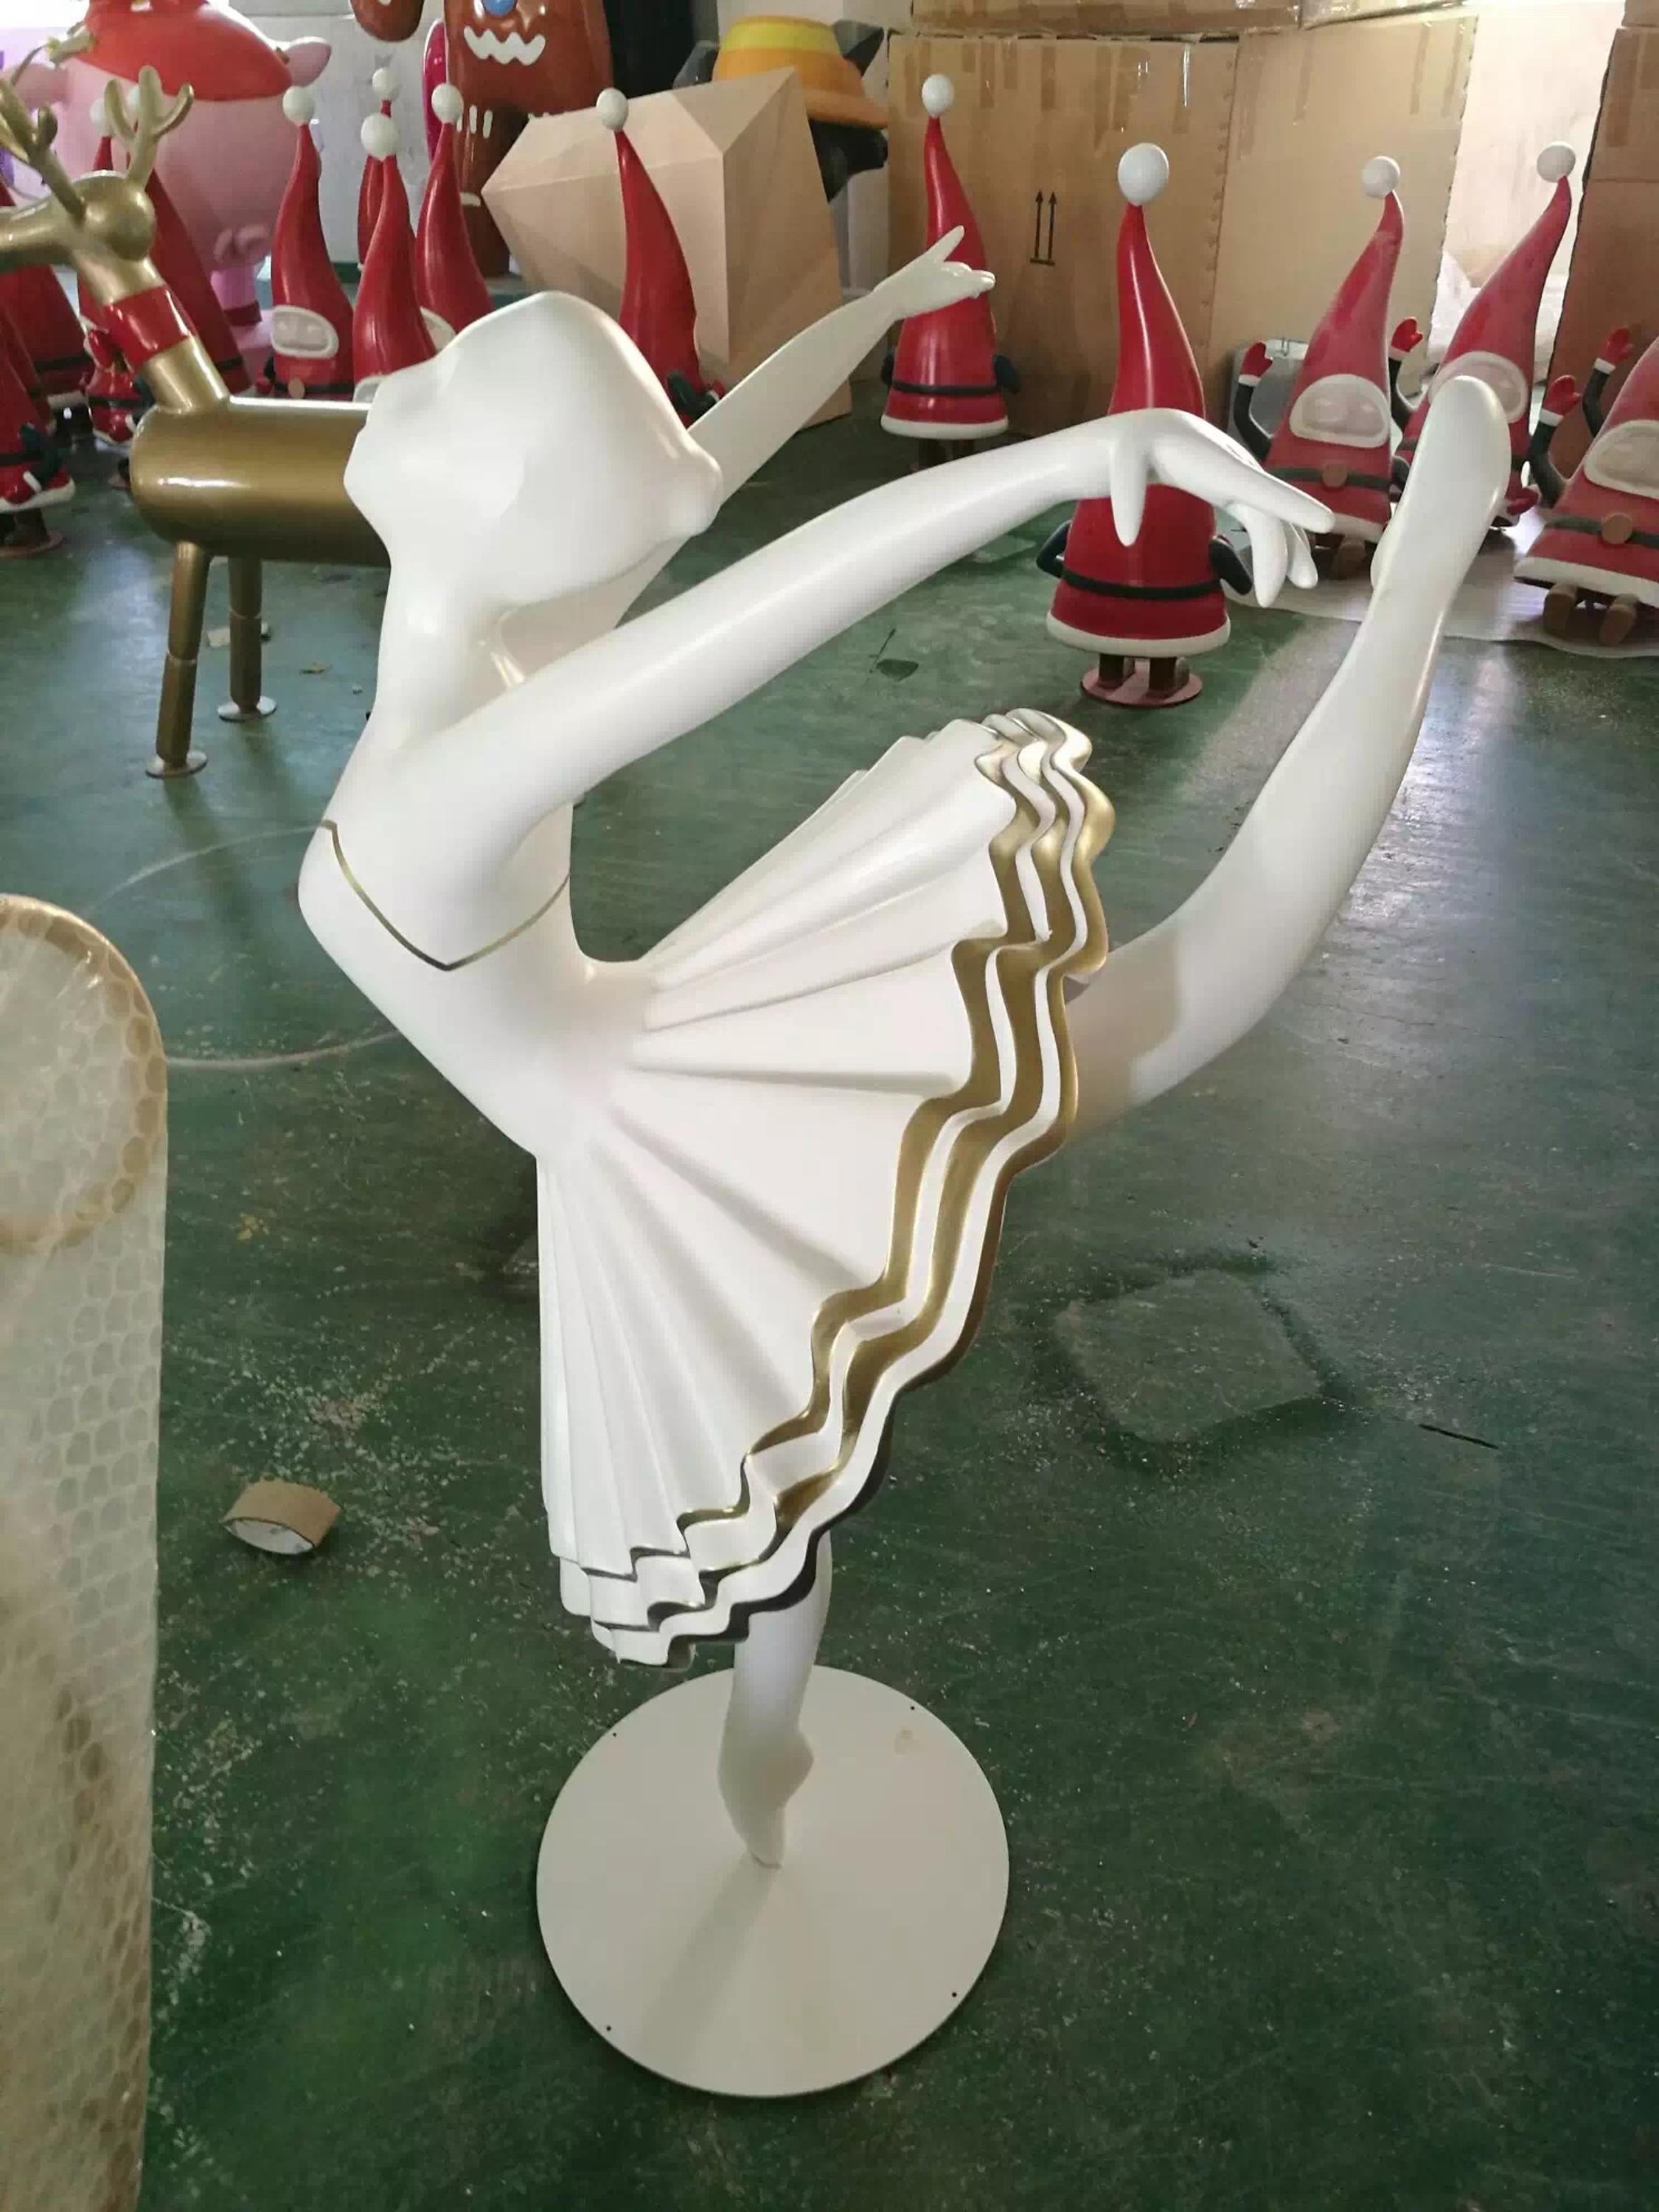 custom made rotating dancing ballerina fiberglass sculpture